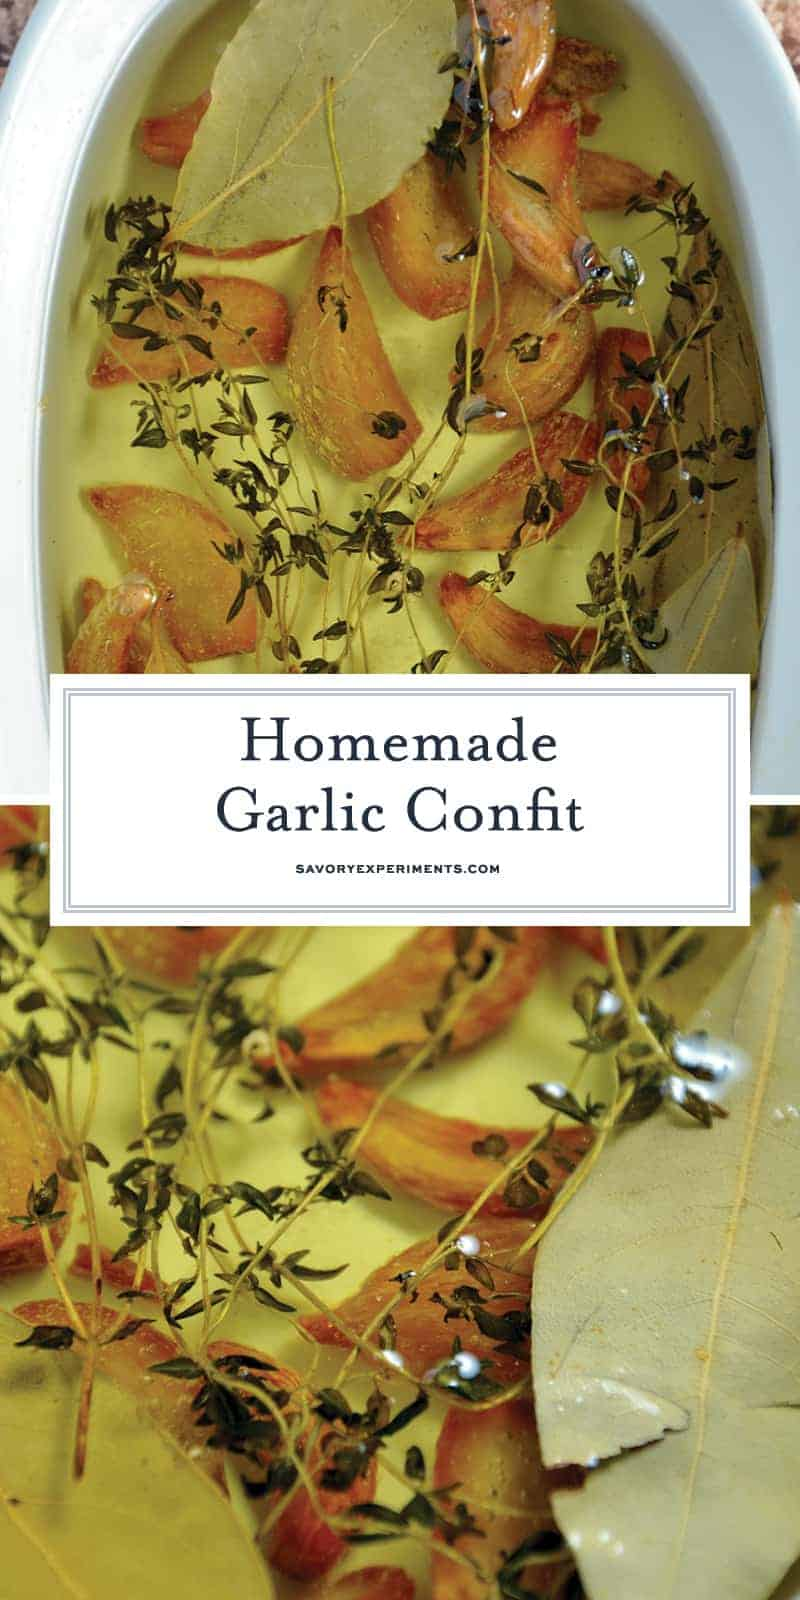 Garlic Confit is a condiment that adds flavor and sophistication to any dish. Gentle garlic flavor without overwhelming. So mild, in fact, that you can eat it straight up off an antipasto platter or spread on a crusty slice of bread. #garlicconfit www.savoryexperiments.com